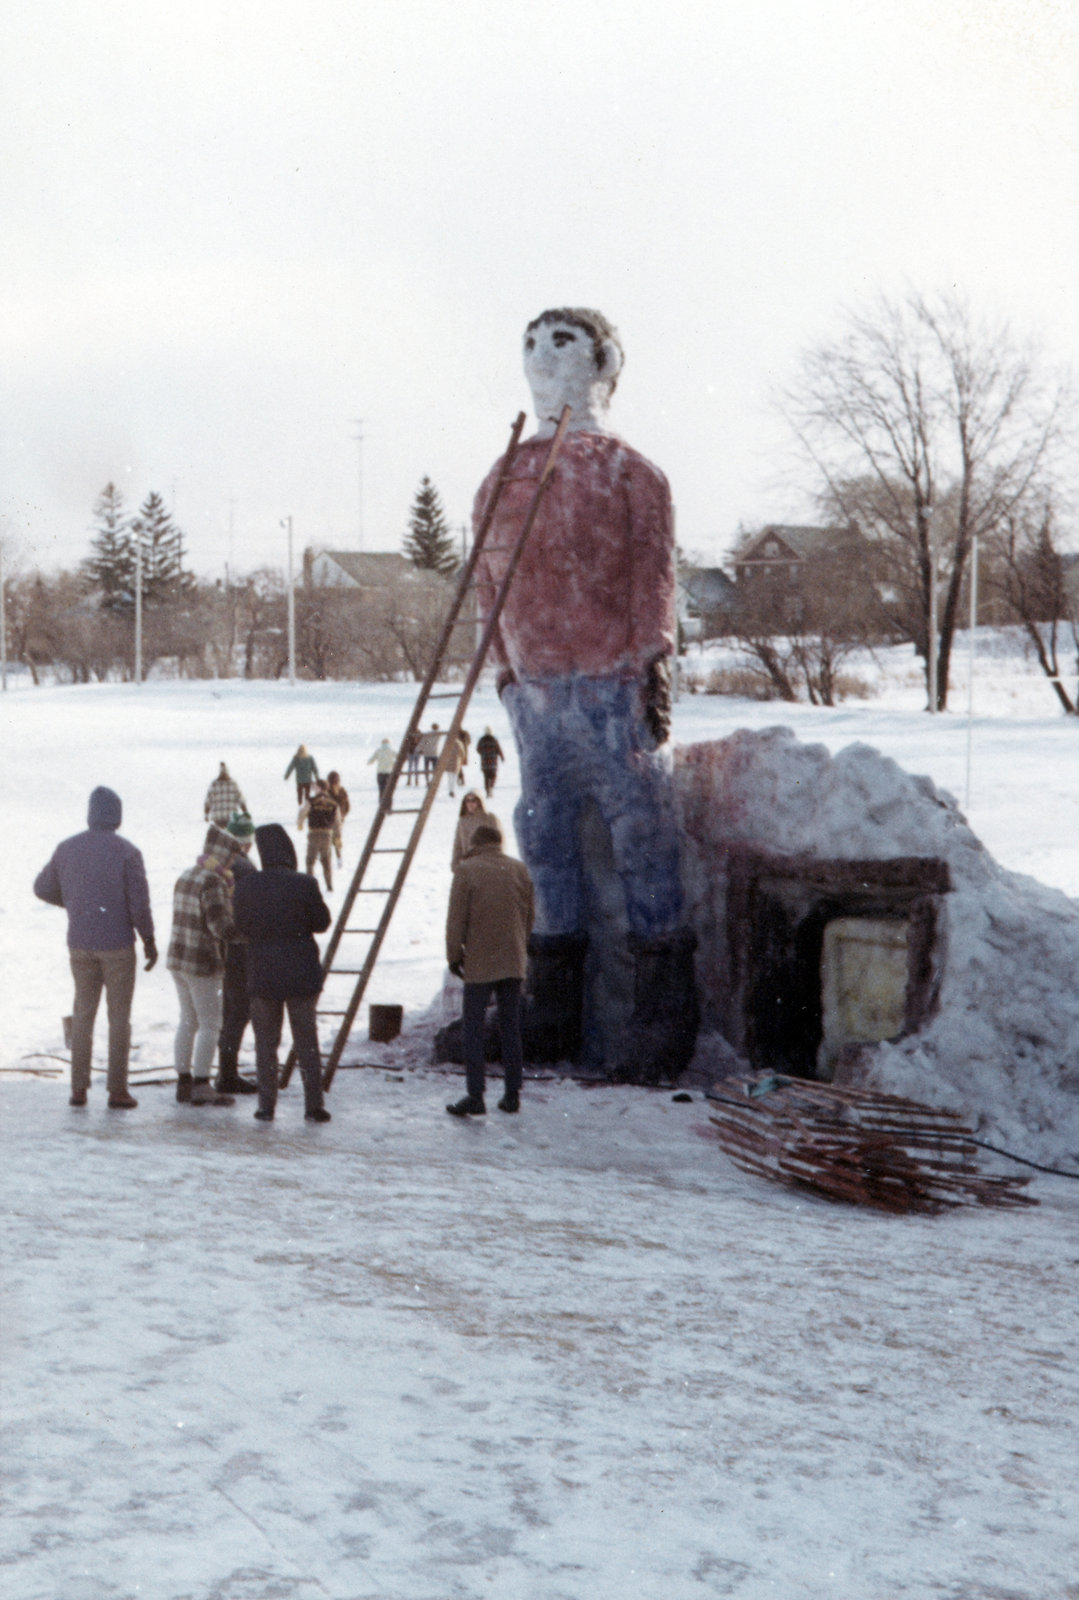 Waterloo Lutheran University Winter Carnival snow sculpture